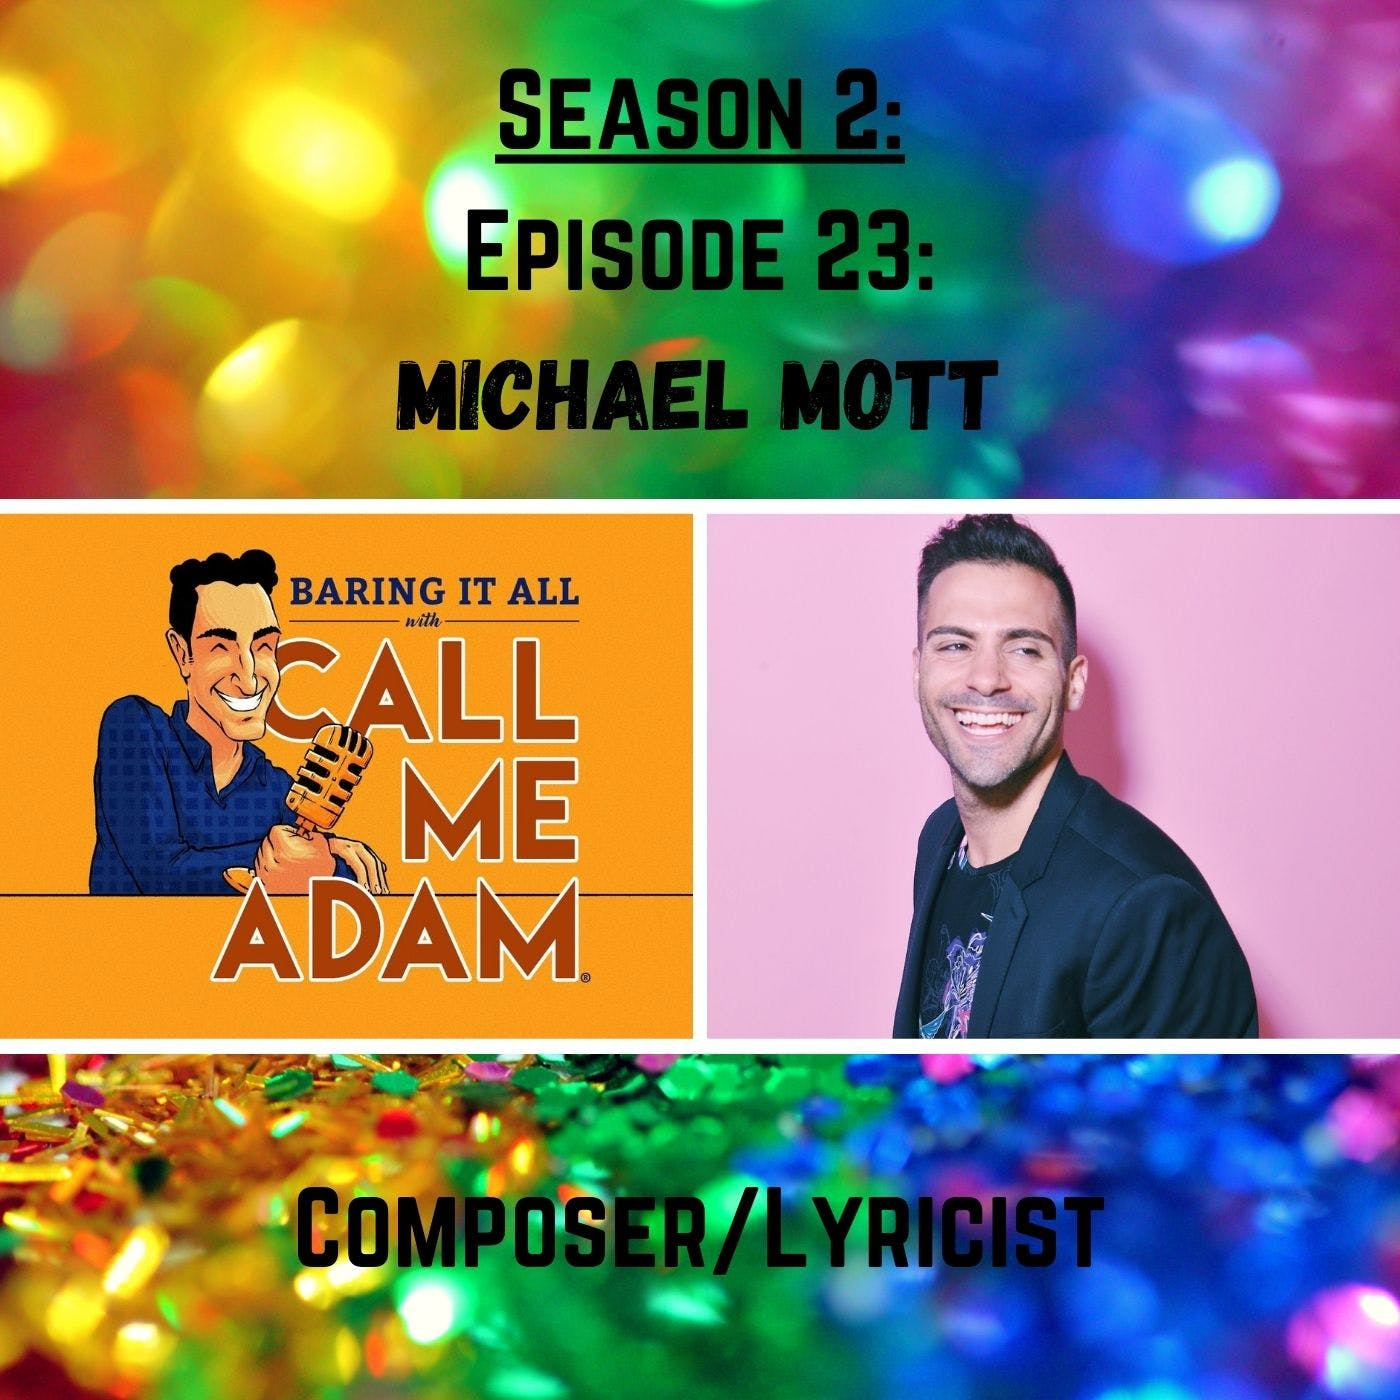 Season 2: Episode 23: Michael Mott: Composer, Lyricist, Songwriter, The Only One, In The Light: A Faustian Tale